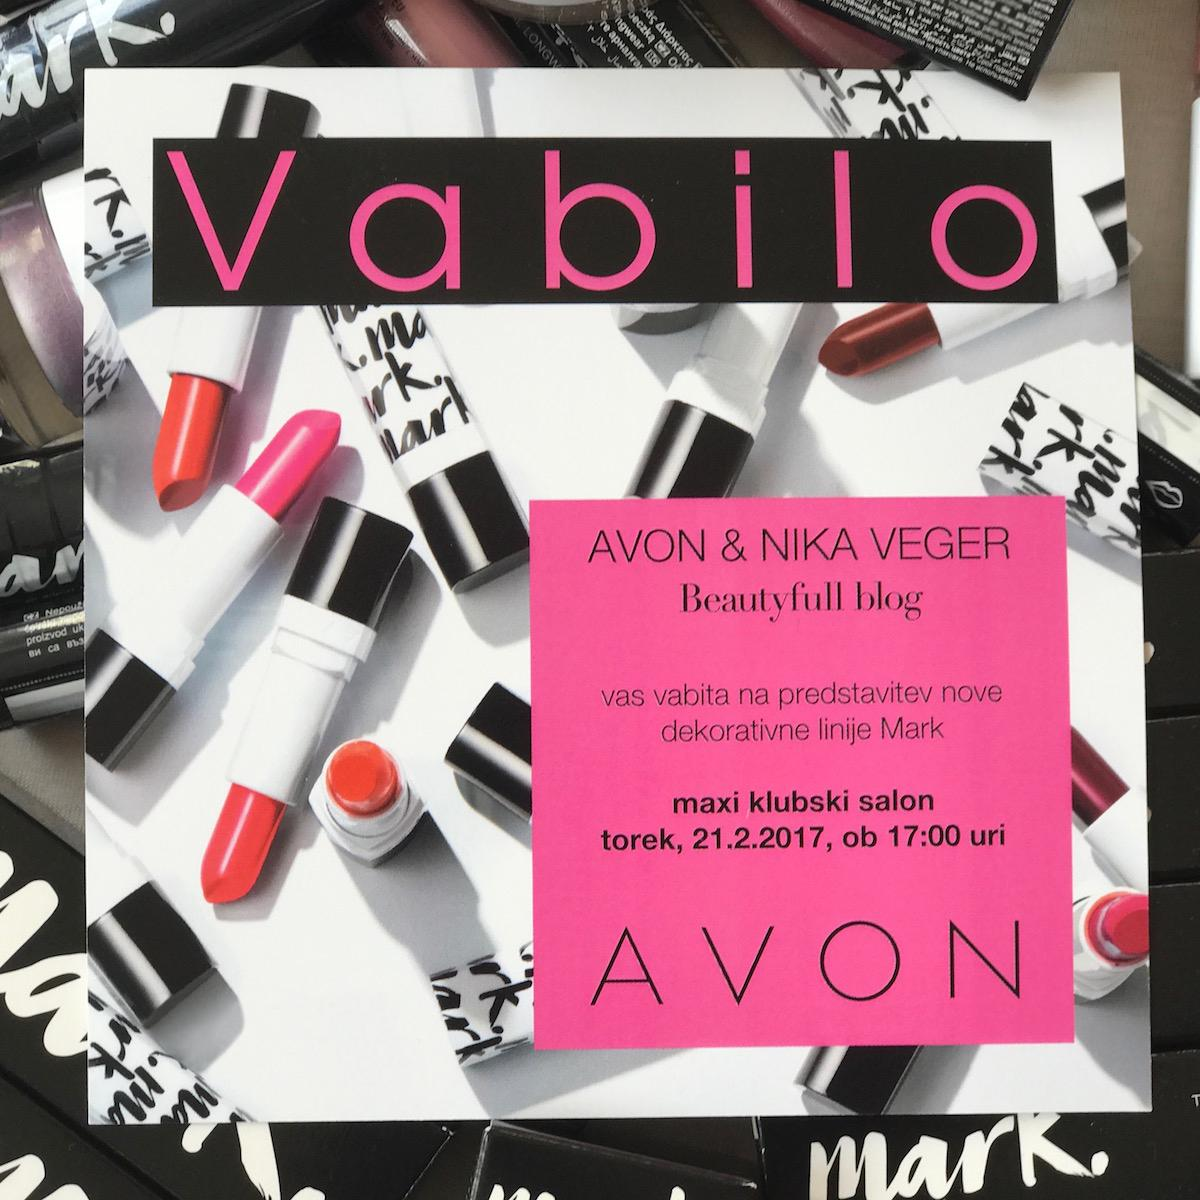 Avon Mark licila press event vabilo